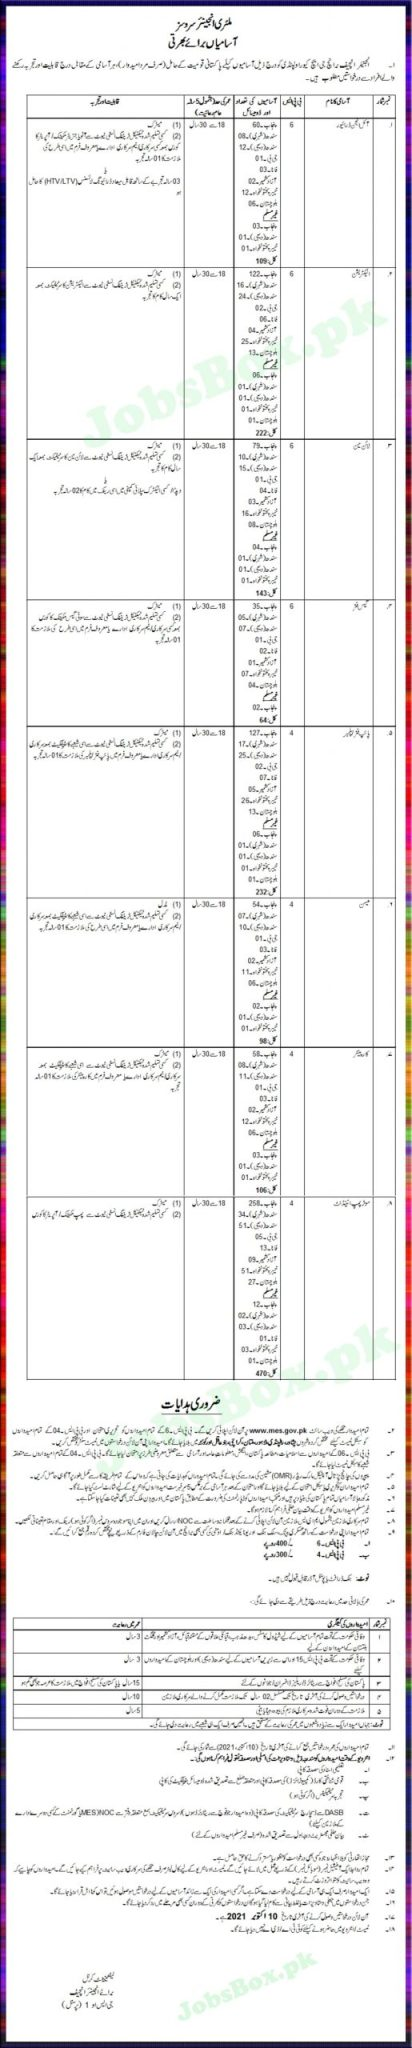 www.mes.gov.pk - MES Military Engineering Services Jobs 2021 in Pakistan